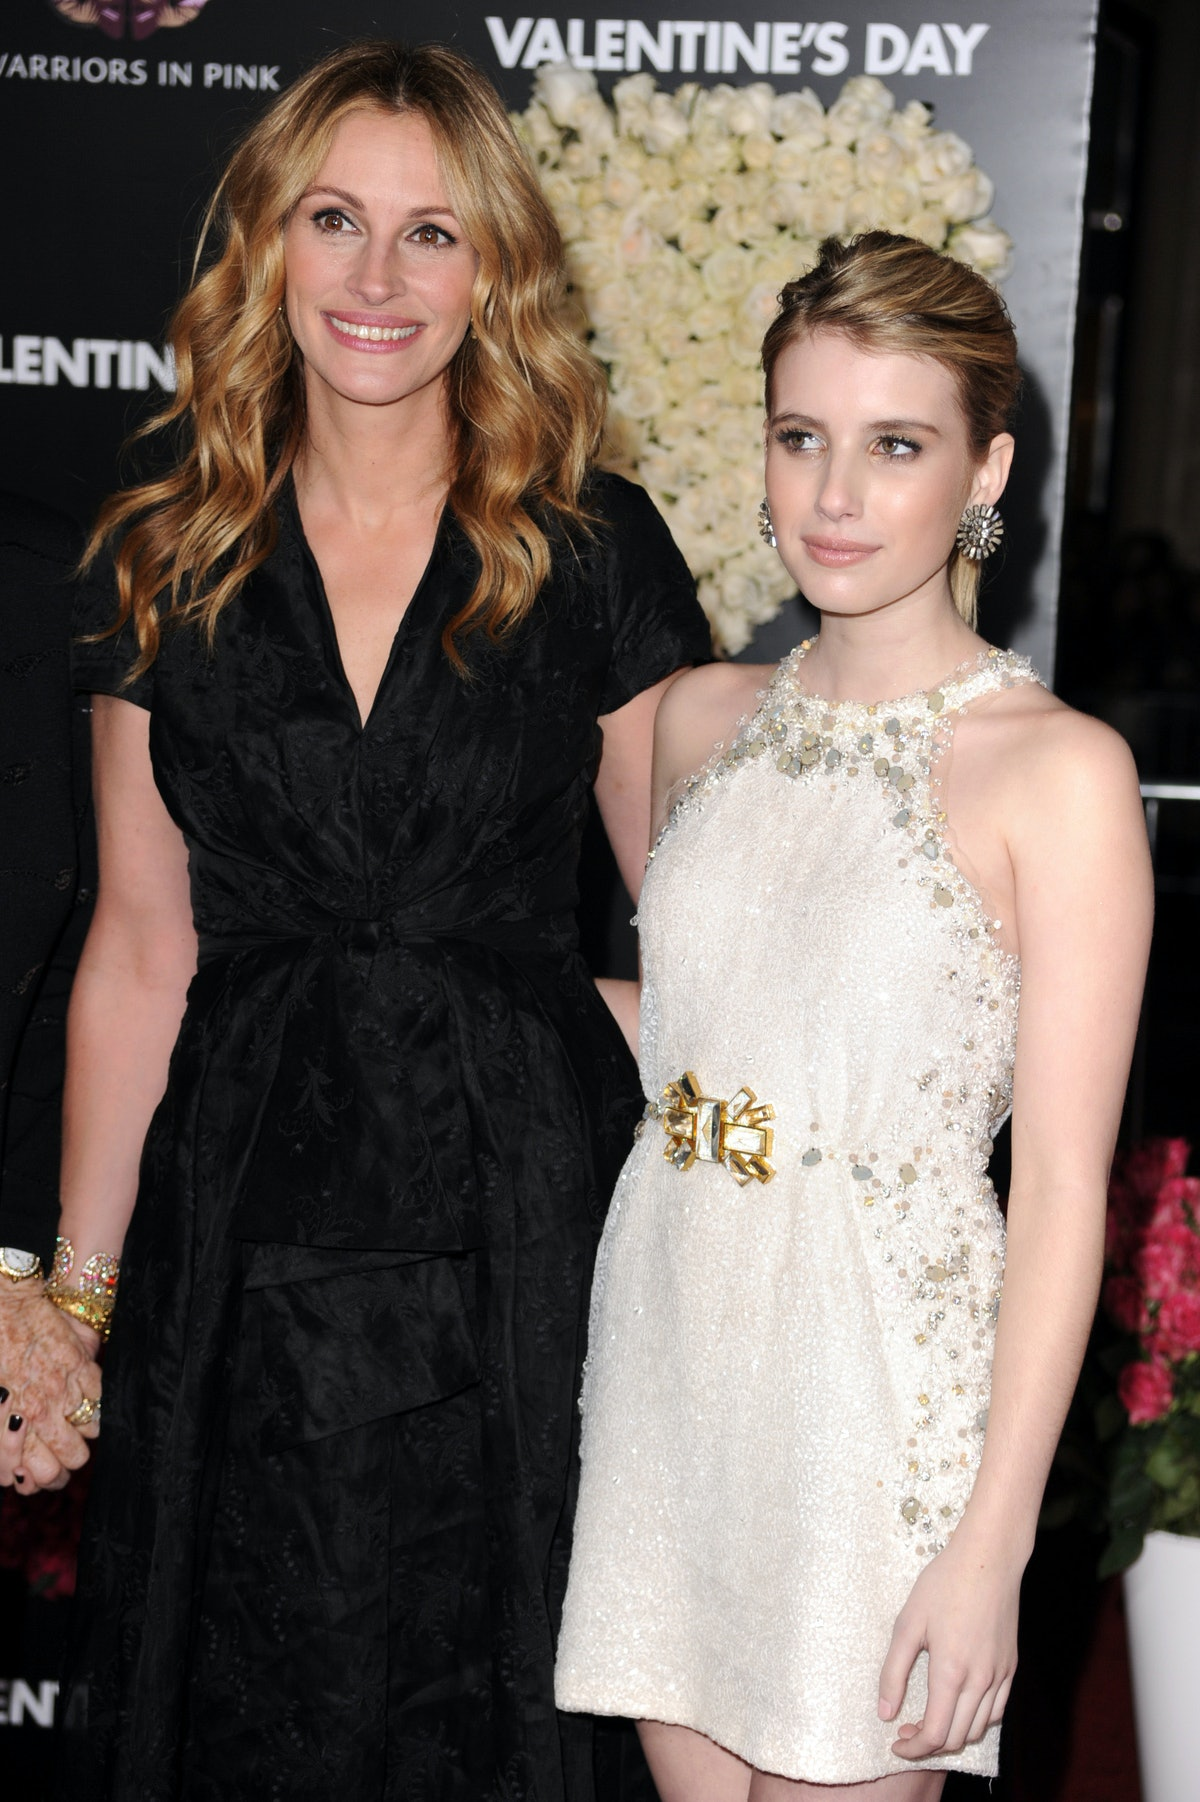 """Actress Julia Roberts and Emma Roberts attends the """"Valentine's Day"""" Los Angeles Premiere at Grauman's Chinese Theatre on February 8, 2010 in Hollywood, California. (Photo by Steve Granitz/WireImage)"""